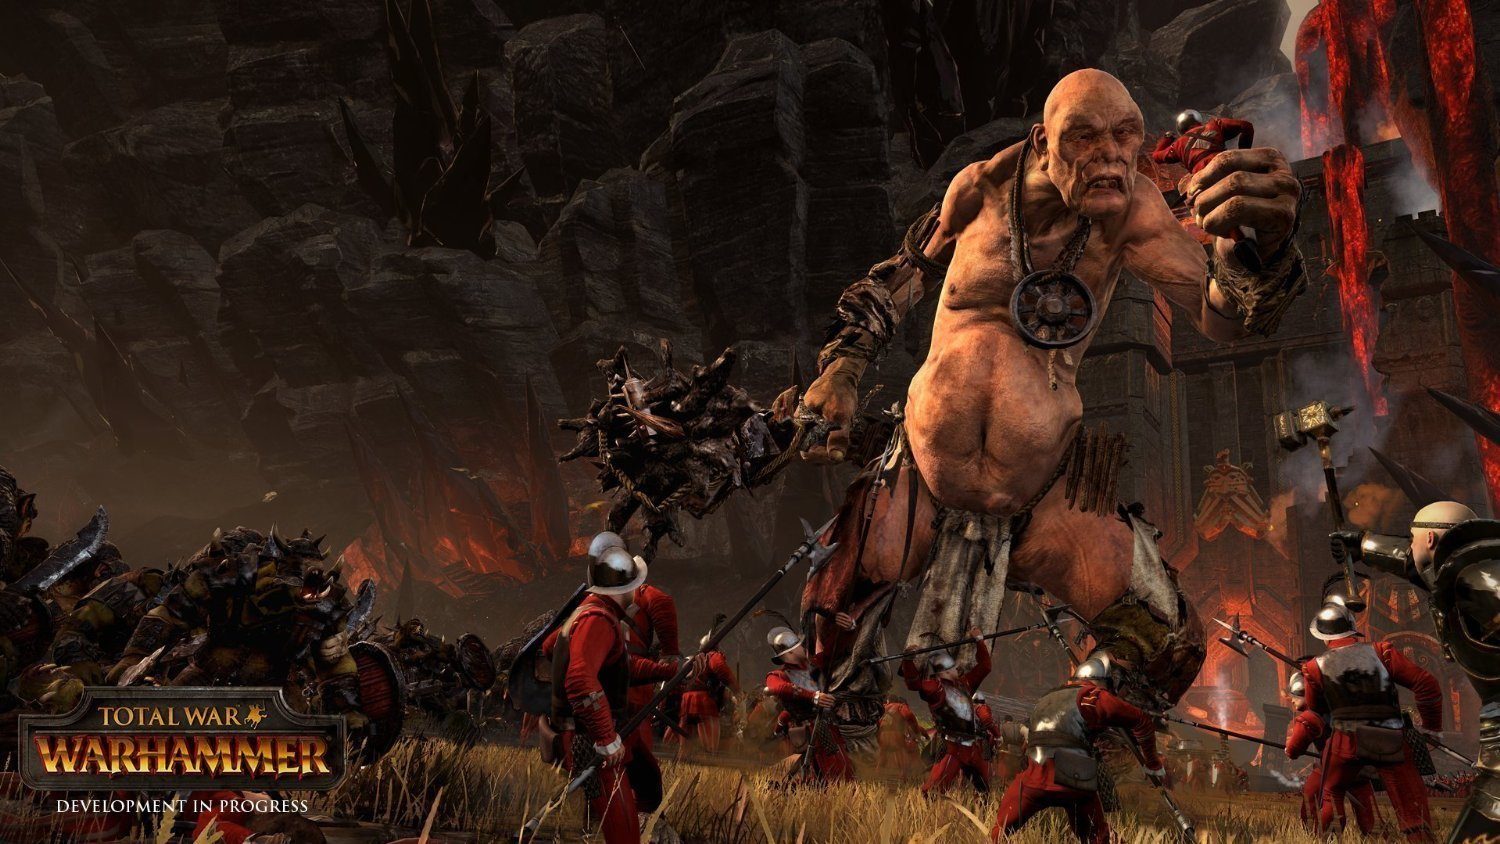 Total War: WARHAMMER image 3